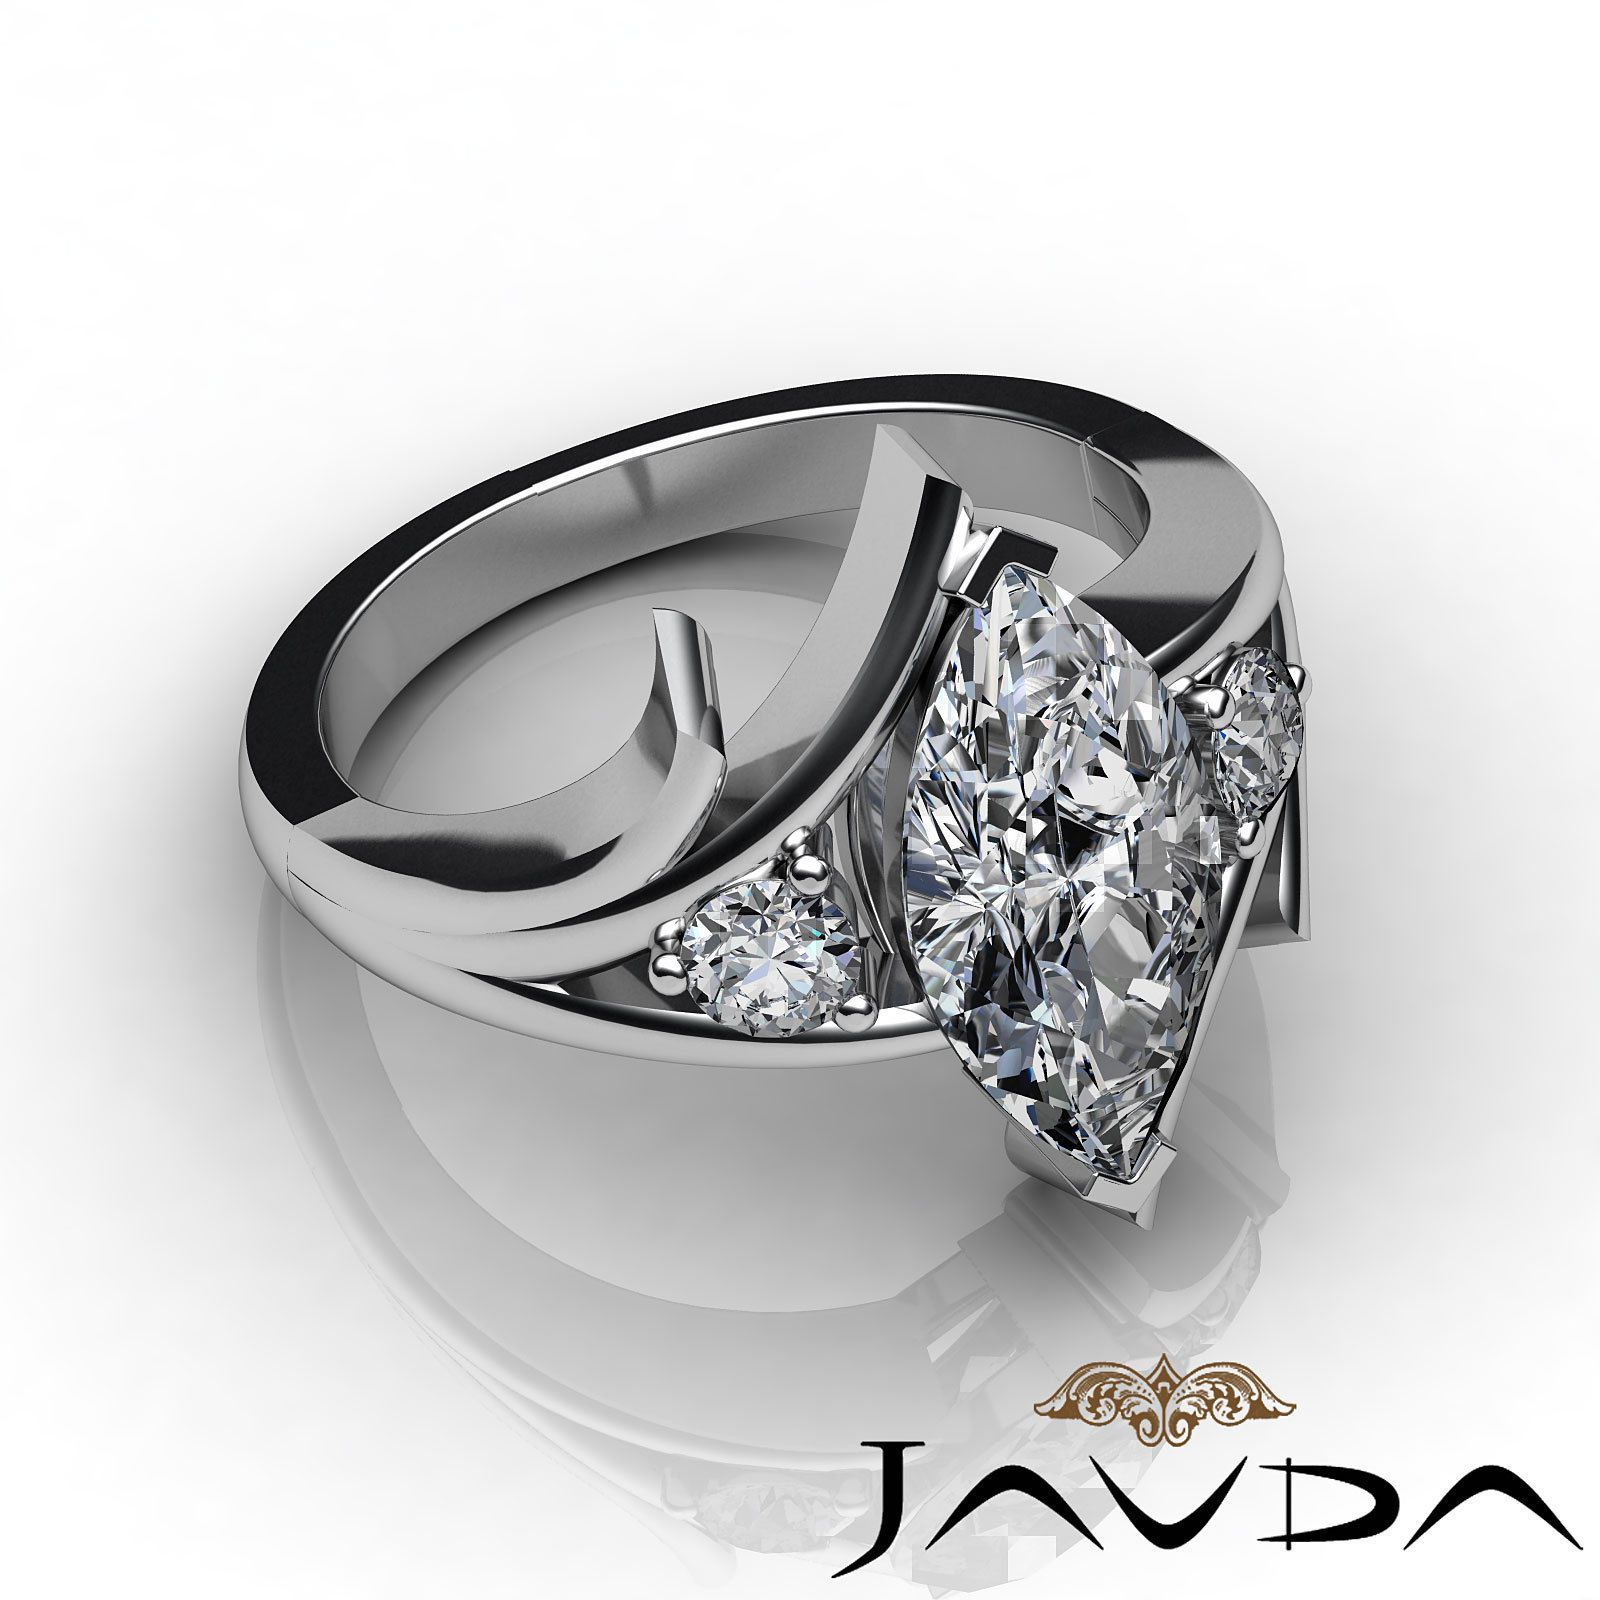 strand white and tiara designs solid rings diamond engagement gold designer sheffield products anna stone ring